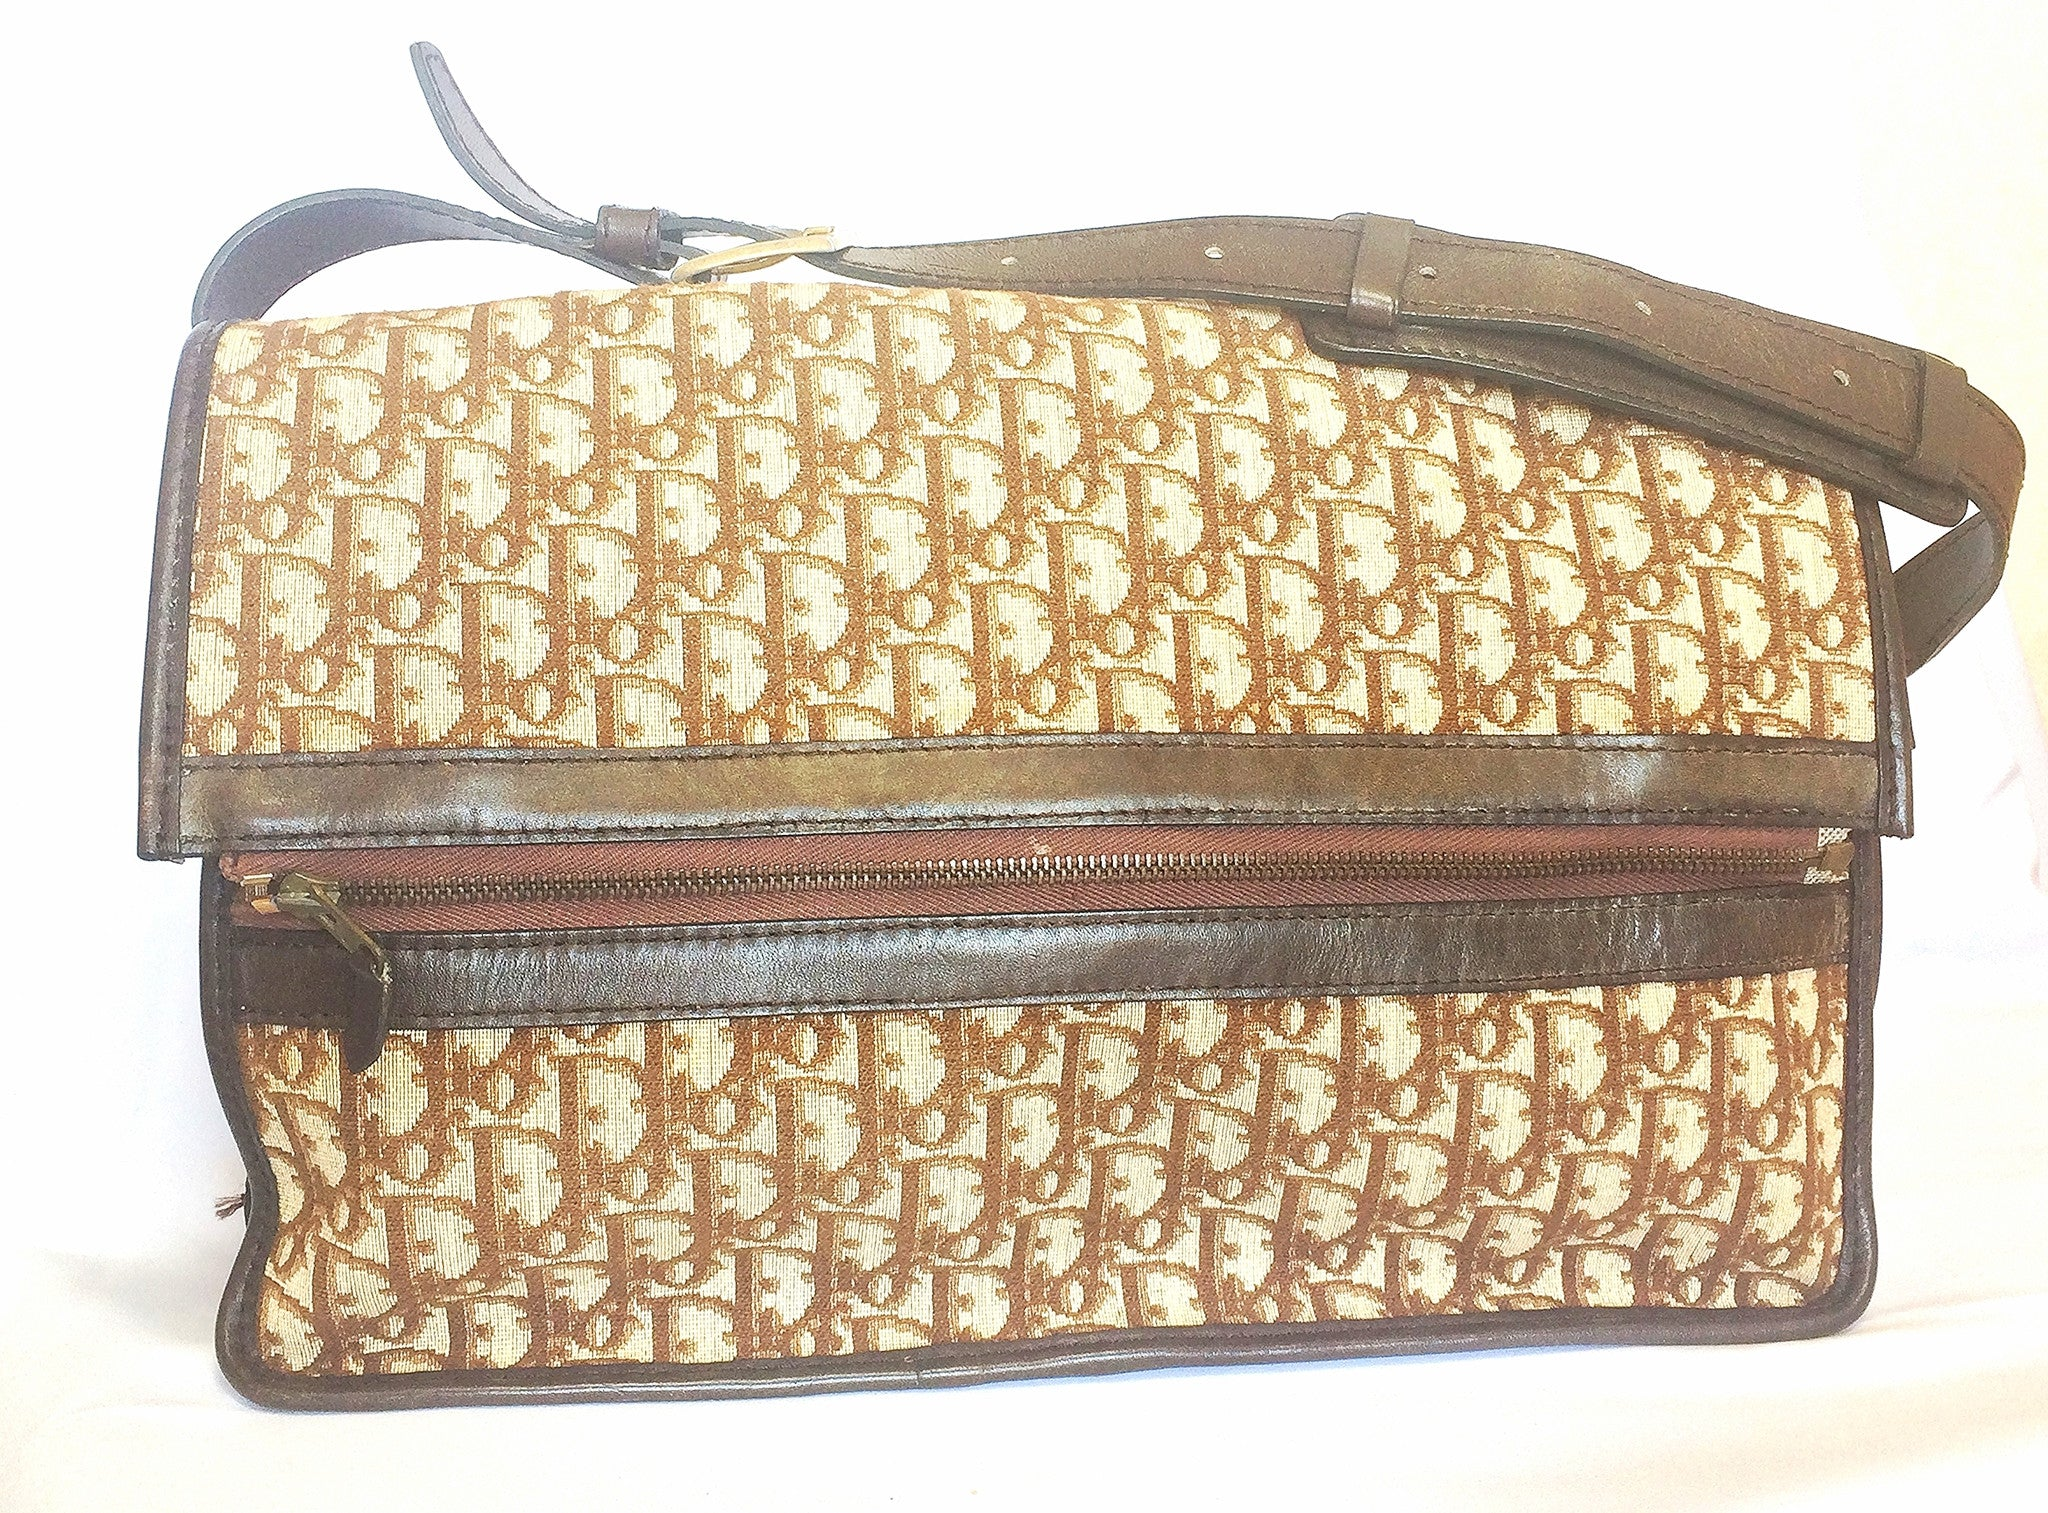 70's, 80's Christian Dior vintage beige and brown trotter monogram large folded design bag, messenger bag. Unisex. Eclair zippers.